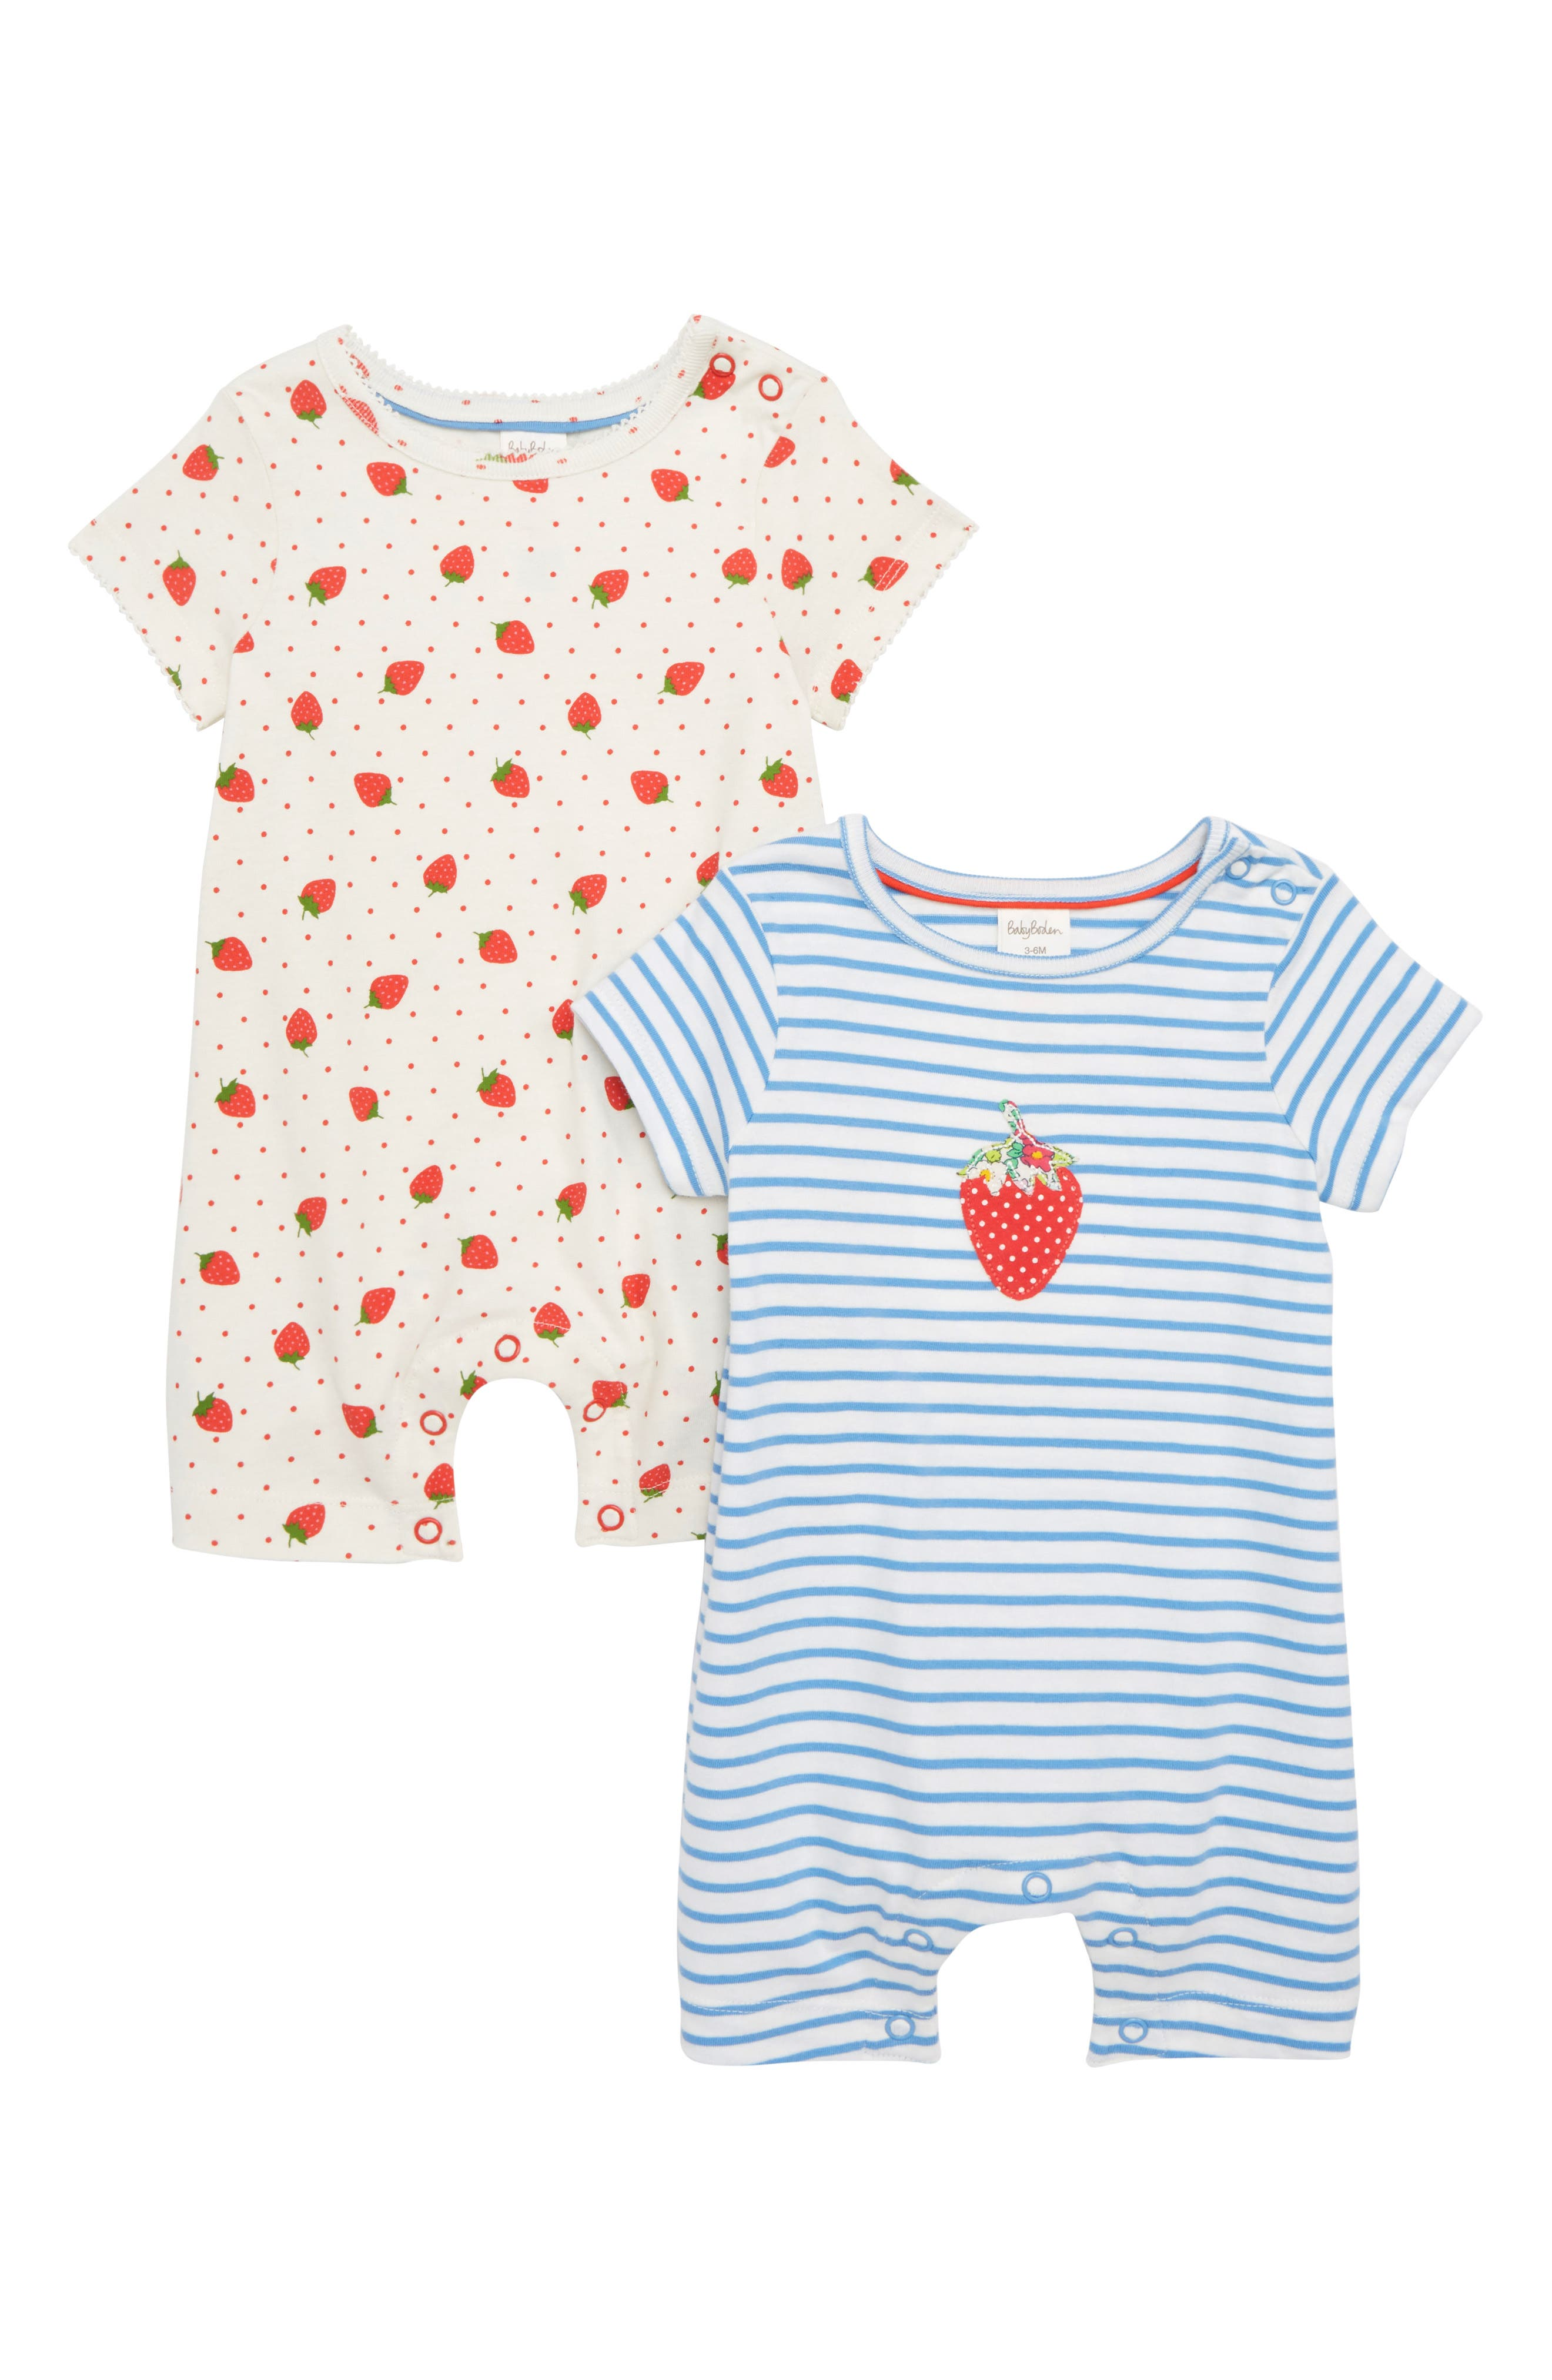 Summer 2-Pack Rompers,                             Main thumbnail 1, color,                             904